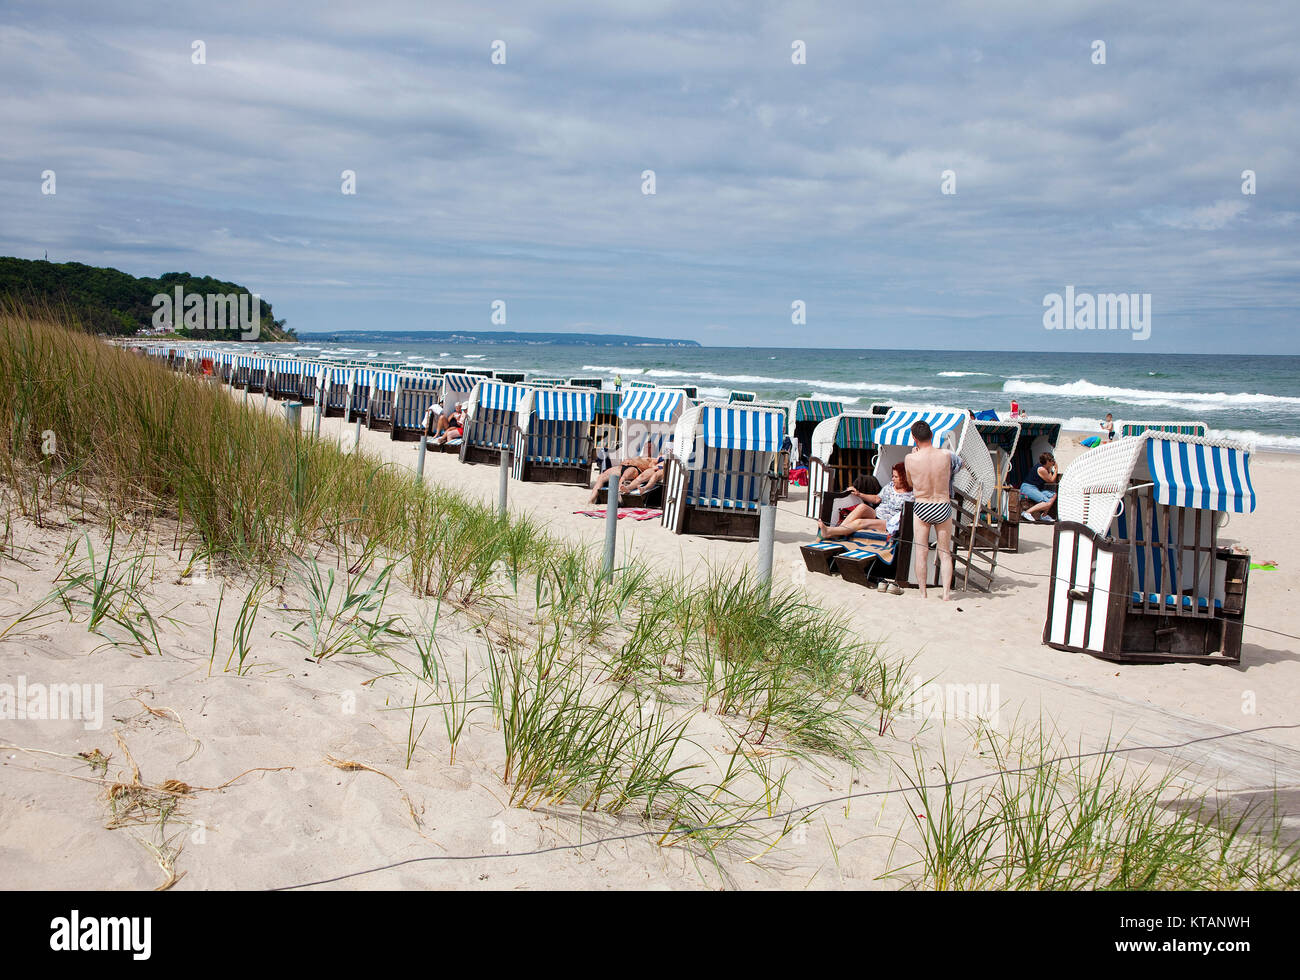 People and beach chairs at the beach of Baabe, Moenchgut-Granitz, Ruegen island, Mecklenburg-Western Pomerania, - Stock Image